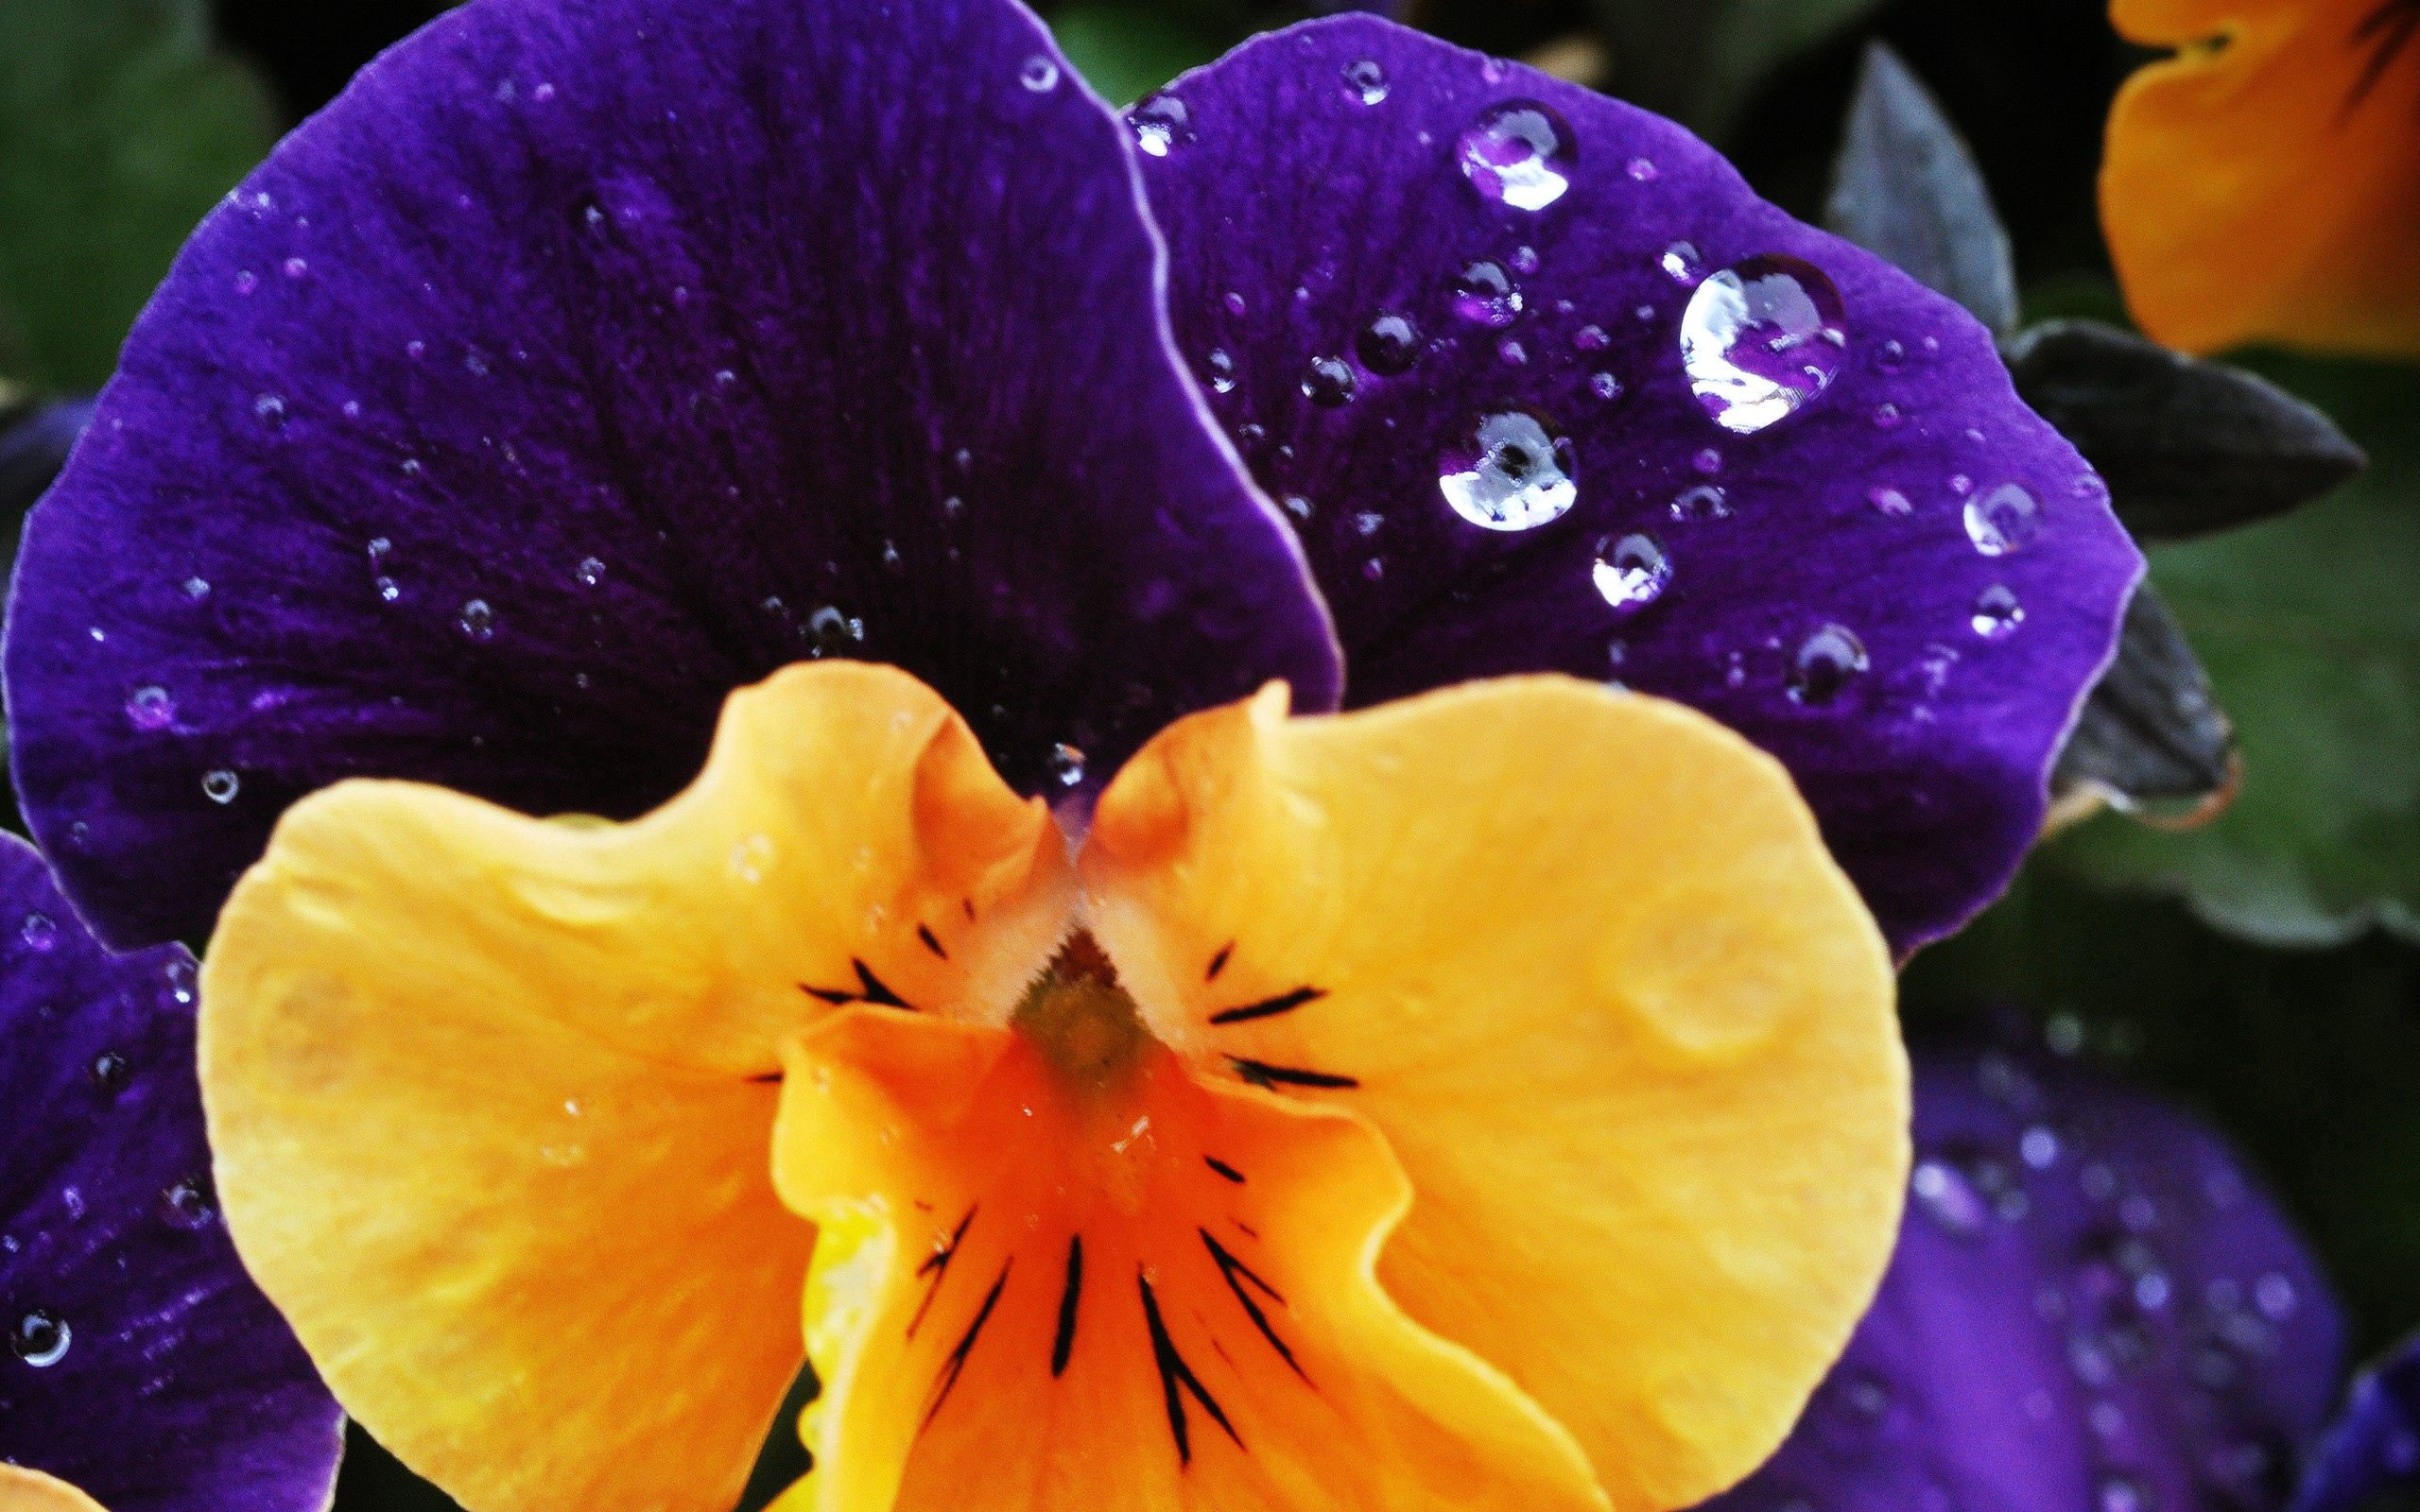 54161 download wallpaper Macro, Flower, Plant, Drops, Dew, Spotted, Spotty, Petals screensavers and pictures for free